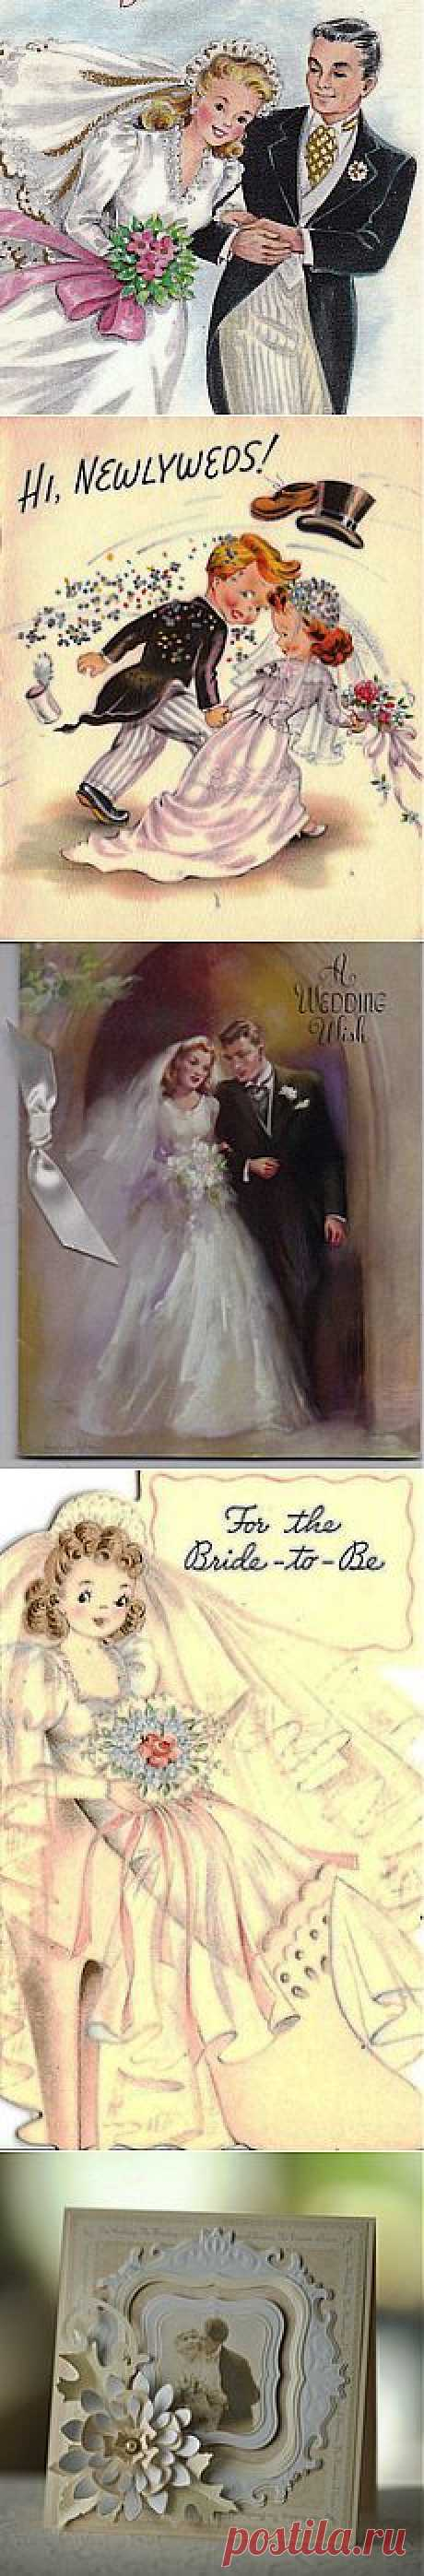 A Message for the Bride and Groom- 1940s Vintage Card